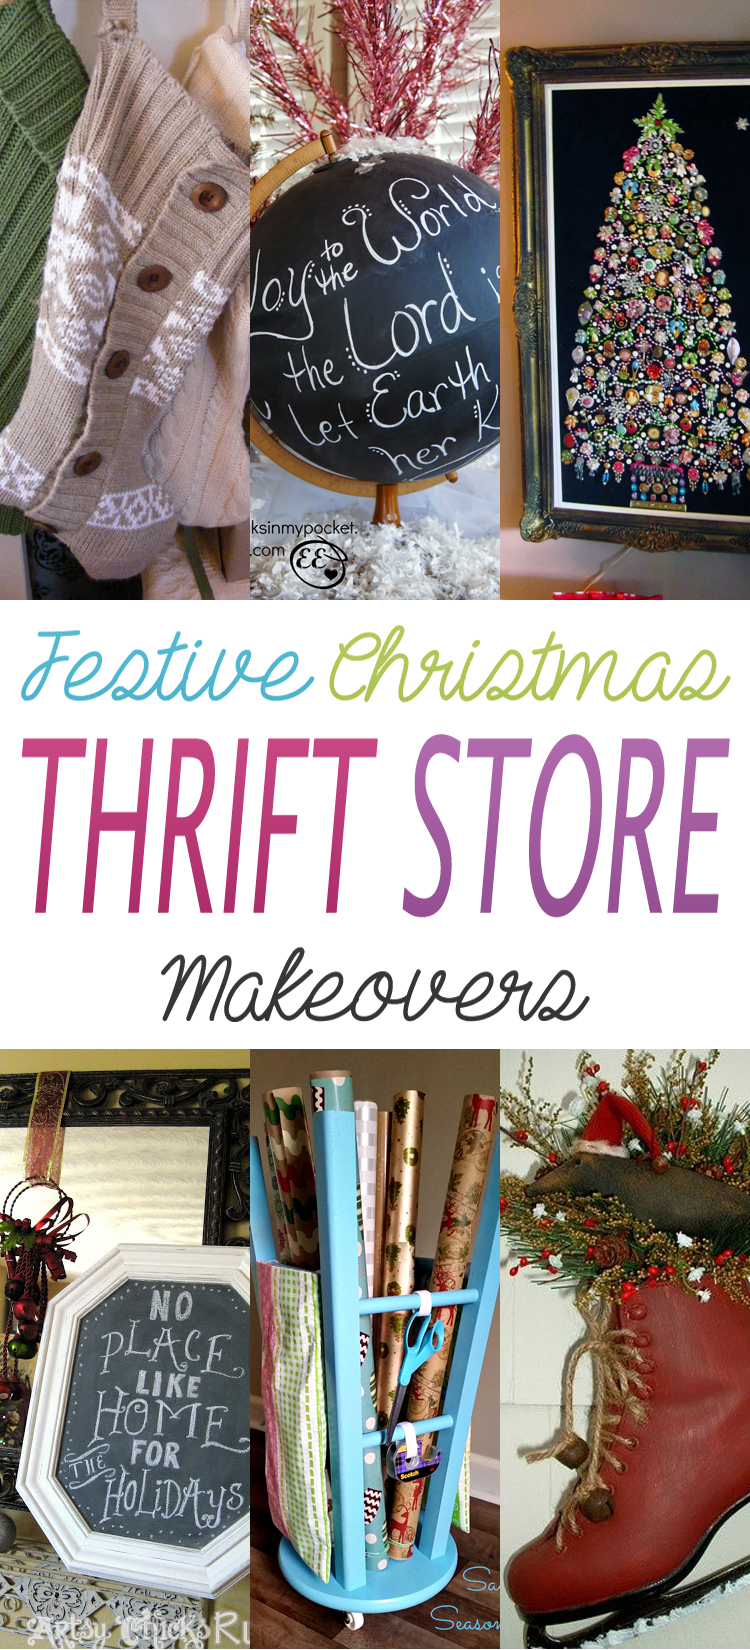 http://thecottagemarket.com/wp-content/uploads/2015/11/HolidayThriftStoreMakeovers-TOWER-0001.jpg